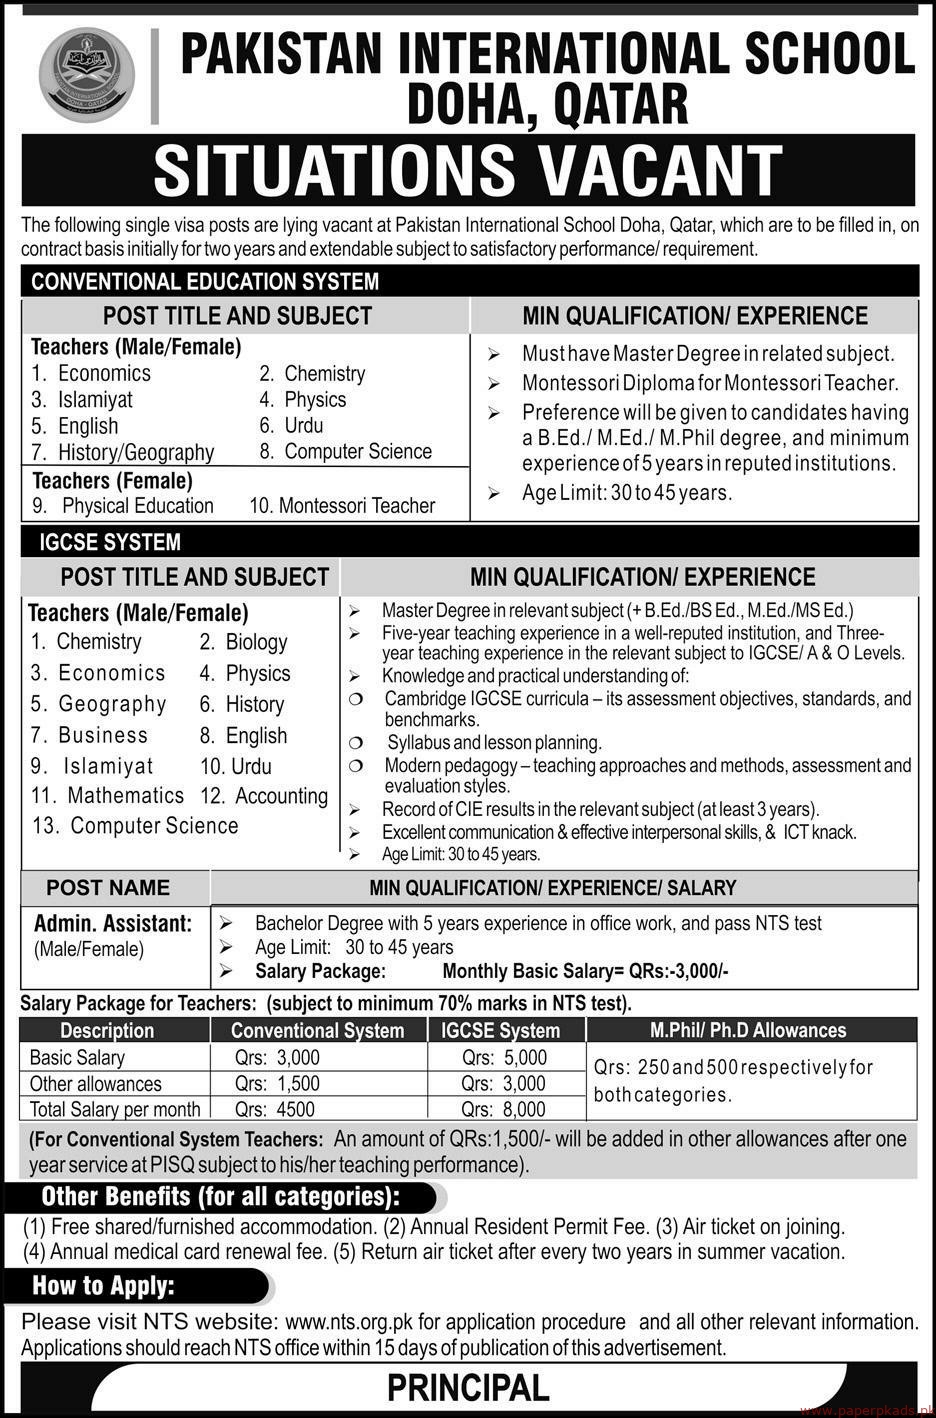 Pakistan International School DOHA QATAR Jobs 2019 Latest